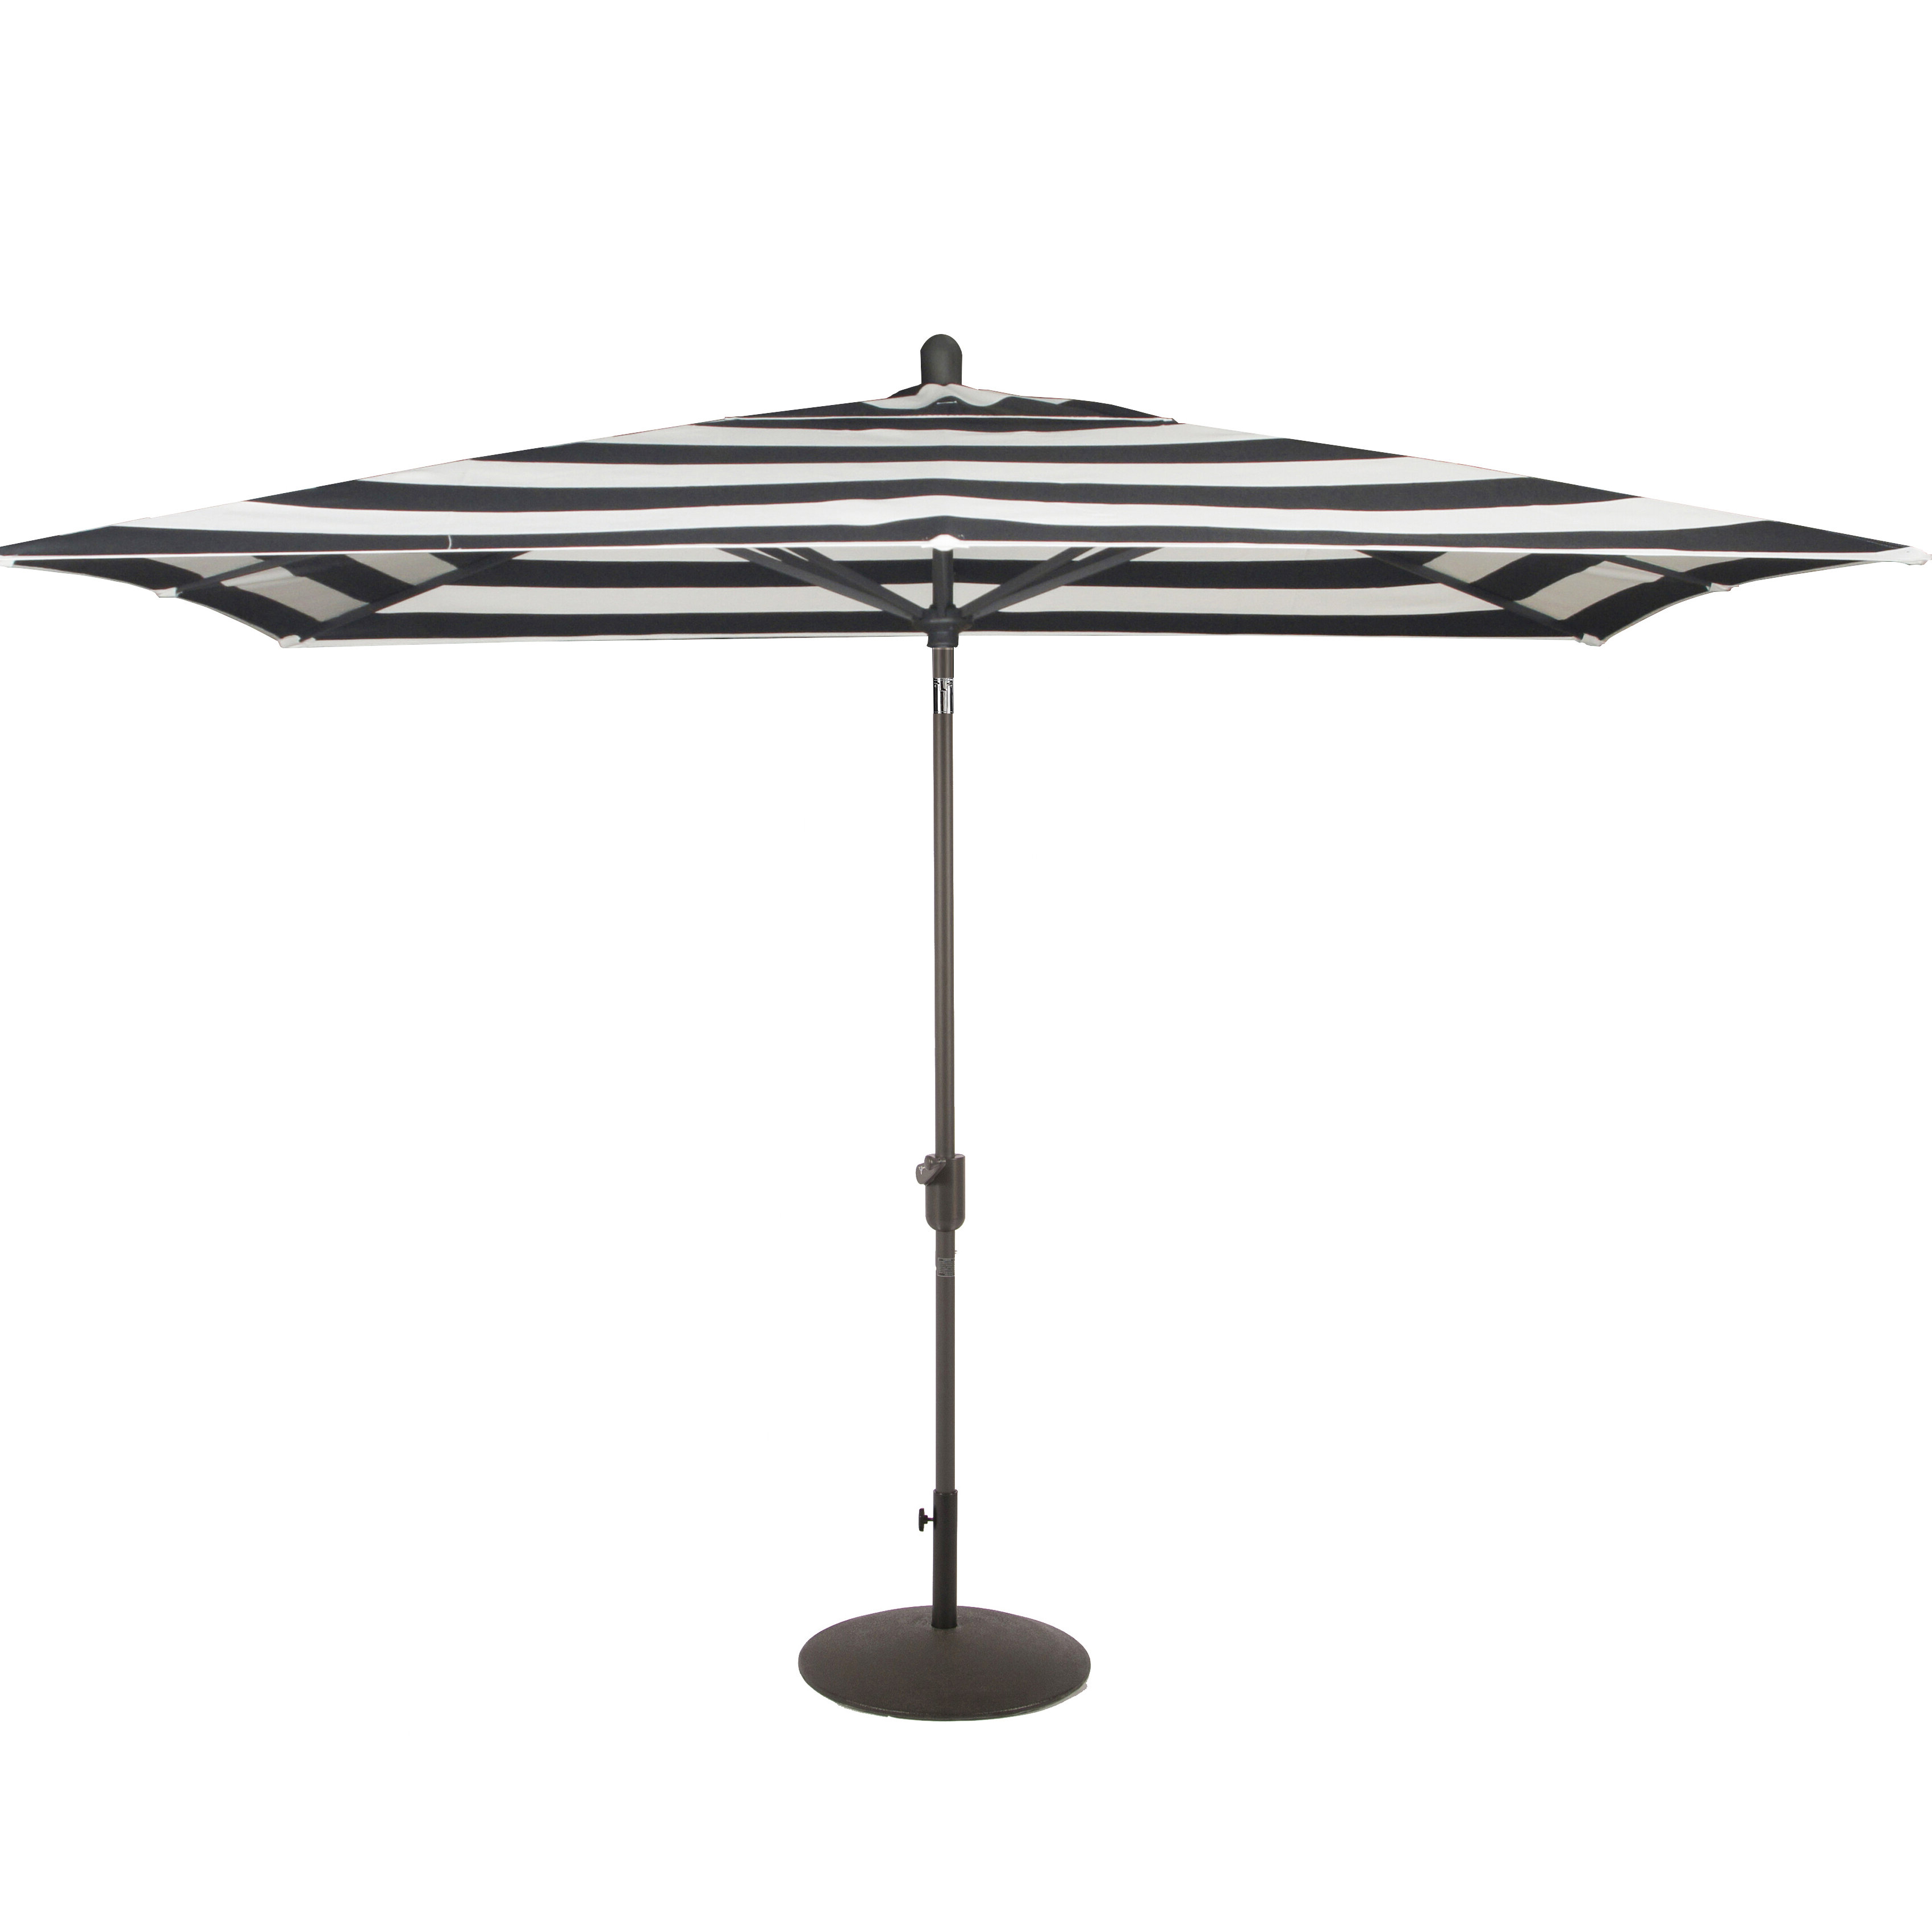 Wiebe Market Sunbrella Umbrellas Regarding Most Recent Wieczorek Auto Tilt 10' X  (View 18 of 20)